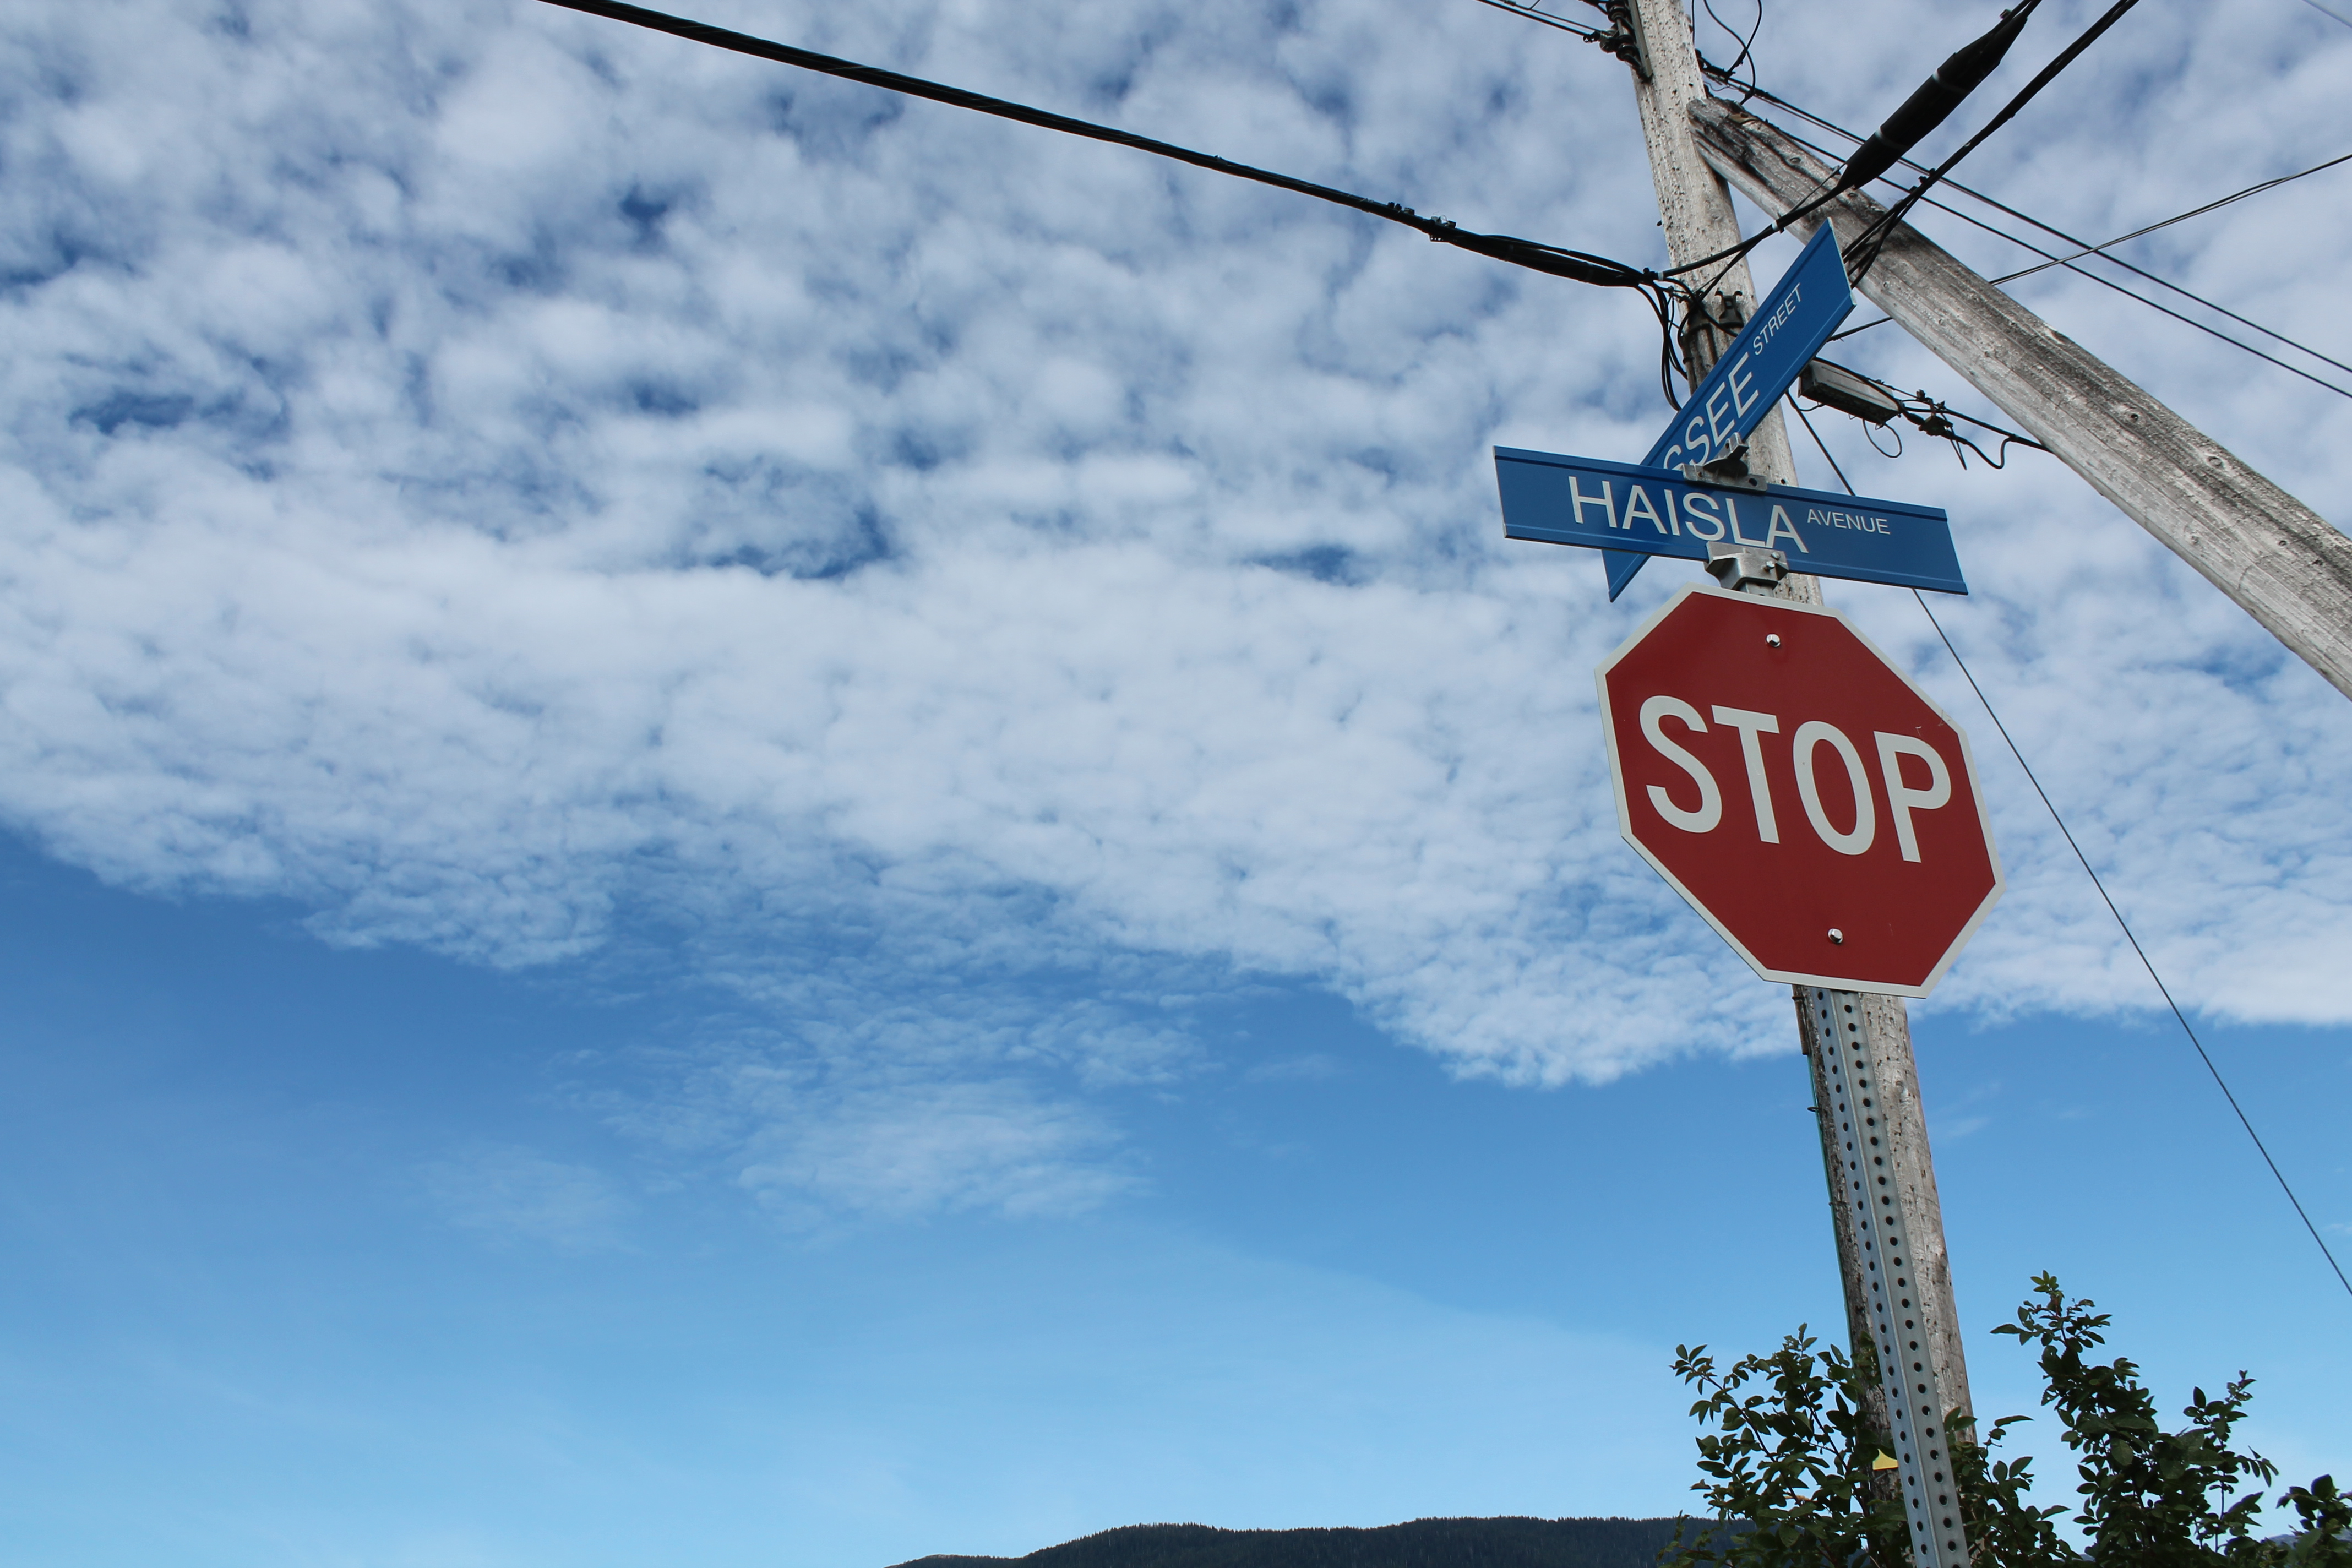 851px version of Haisla Stop Sign